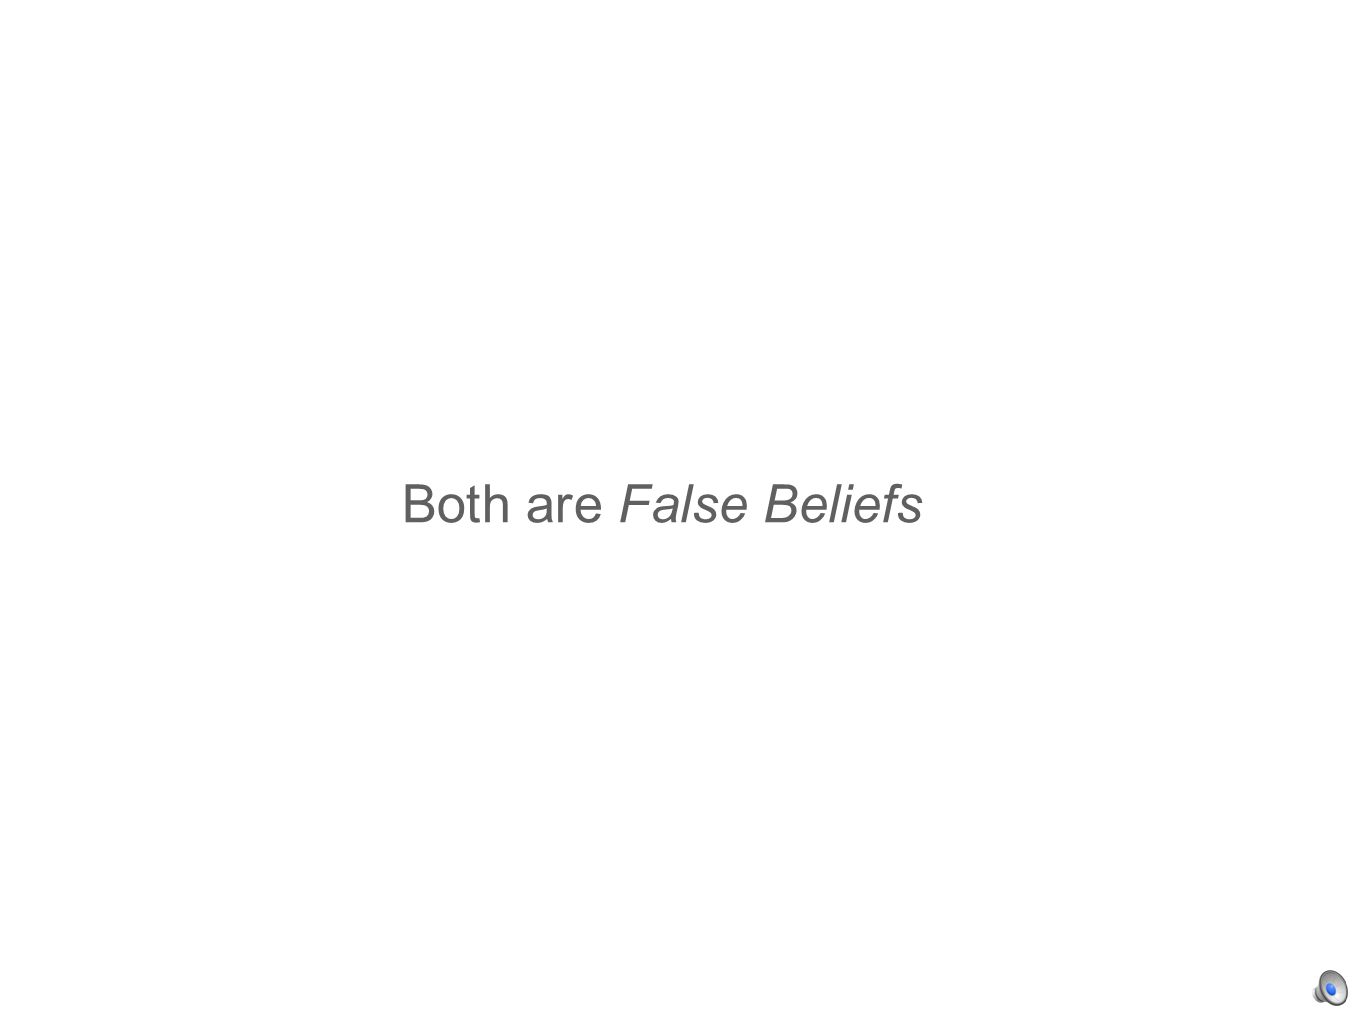 Both are False Beliefs